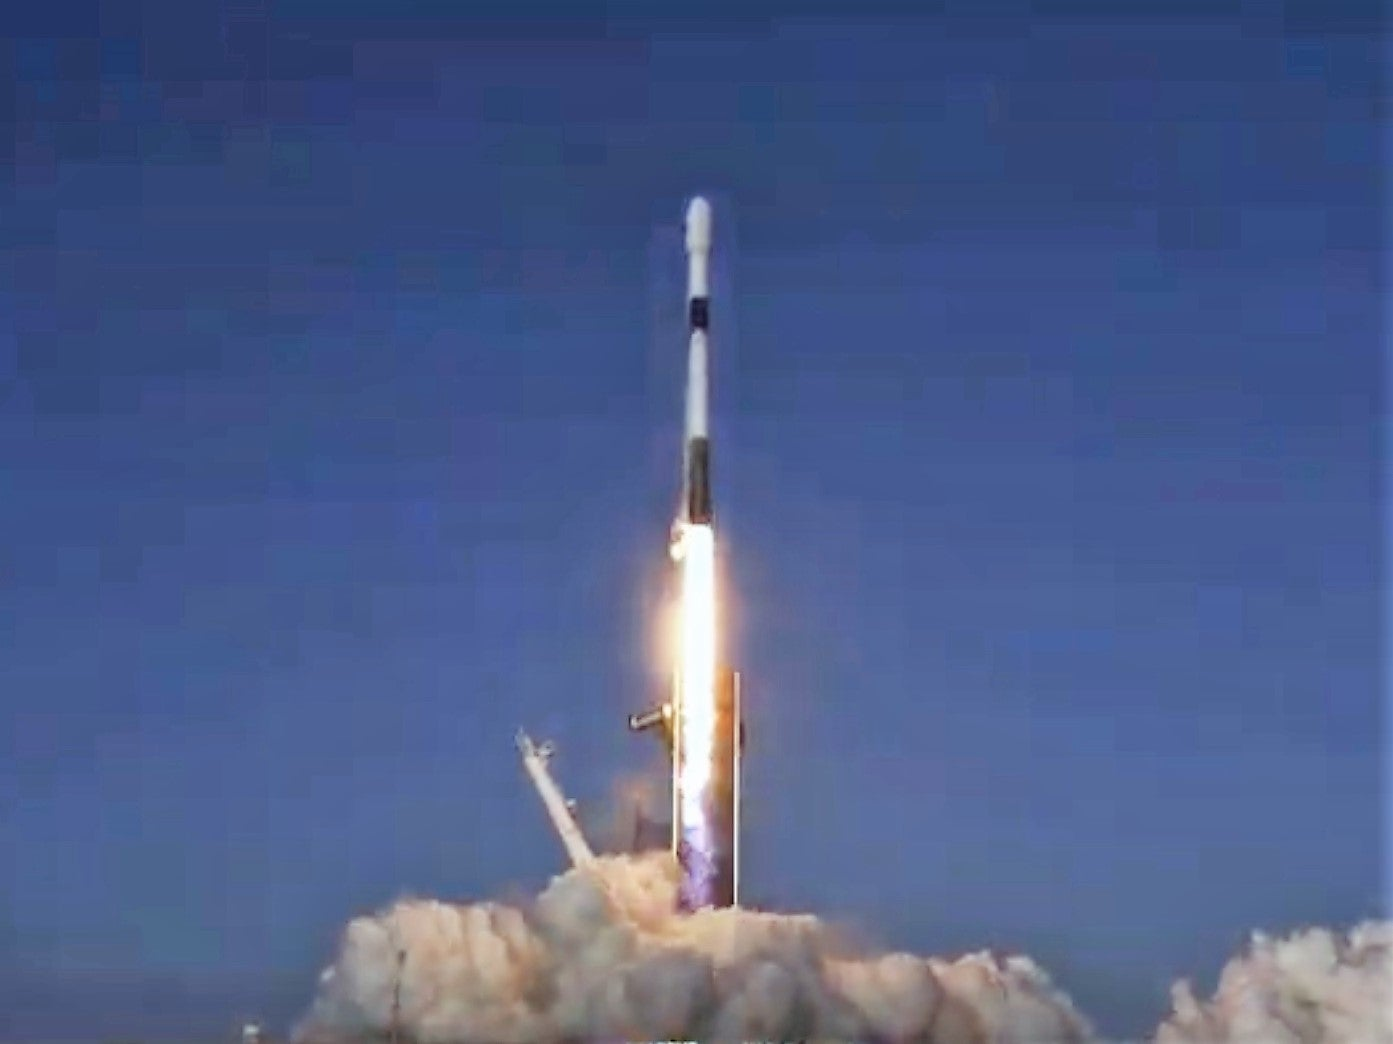 Elon Musk's SpaceX launches controversial Starlink satellites